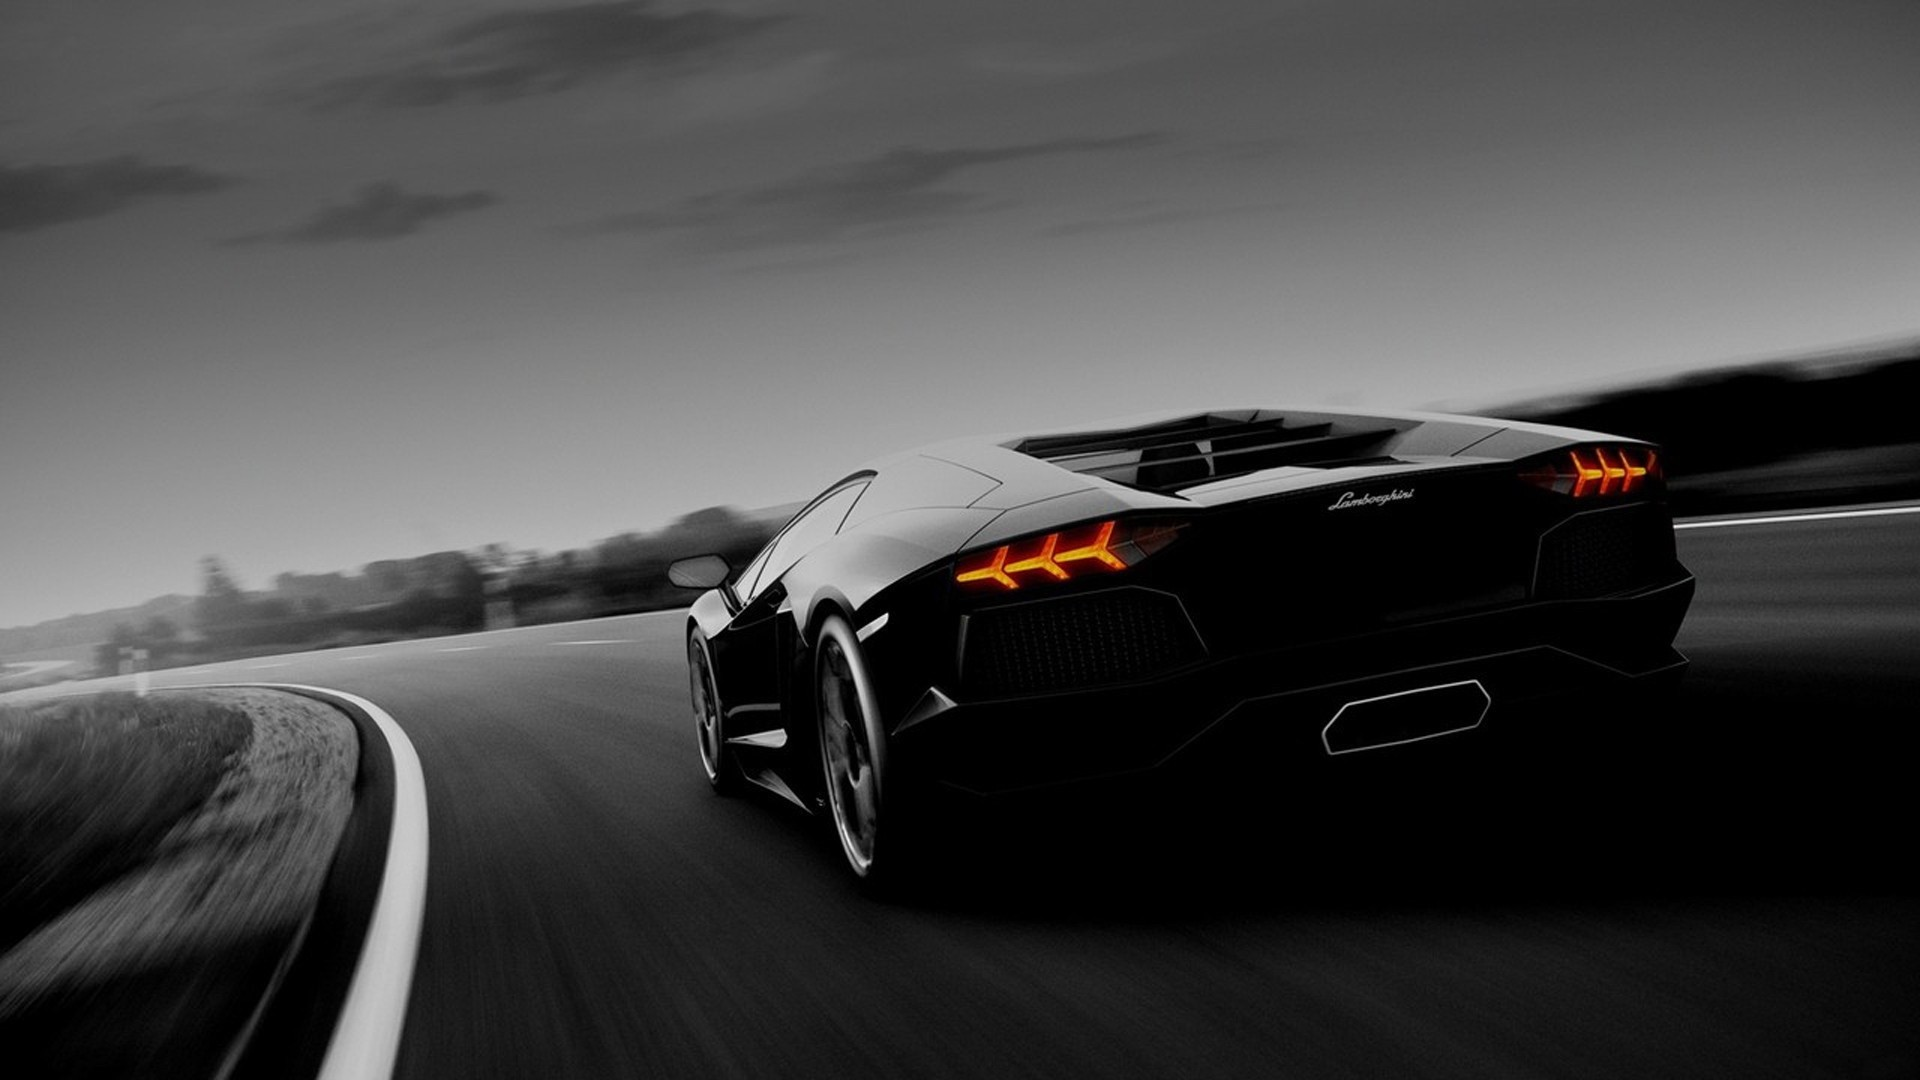 Lamborghini 3d Live Wallpaper Wallpaper For Pc 183 ① Download Free Amazing Backgrounds For